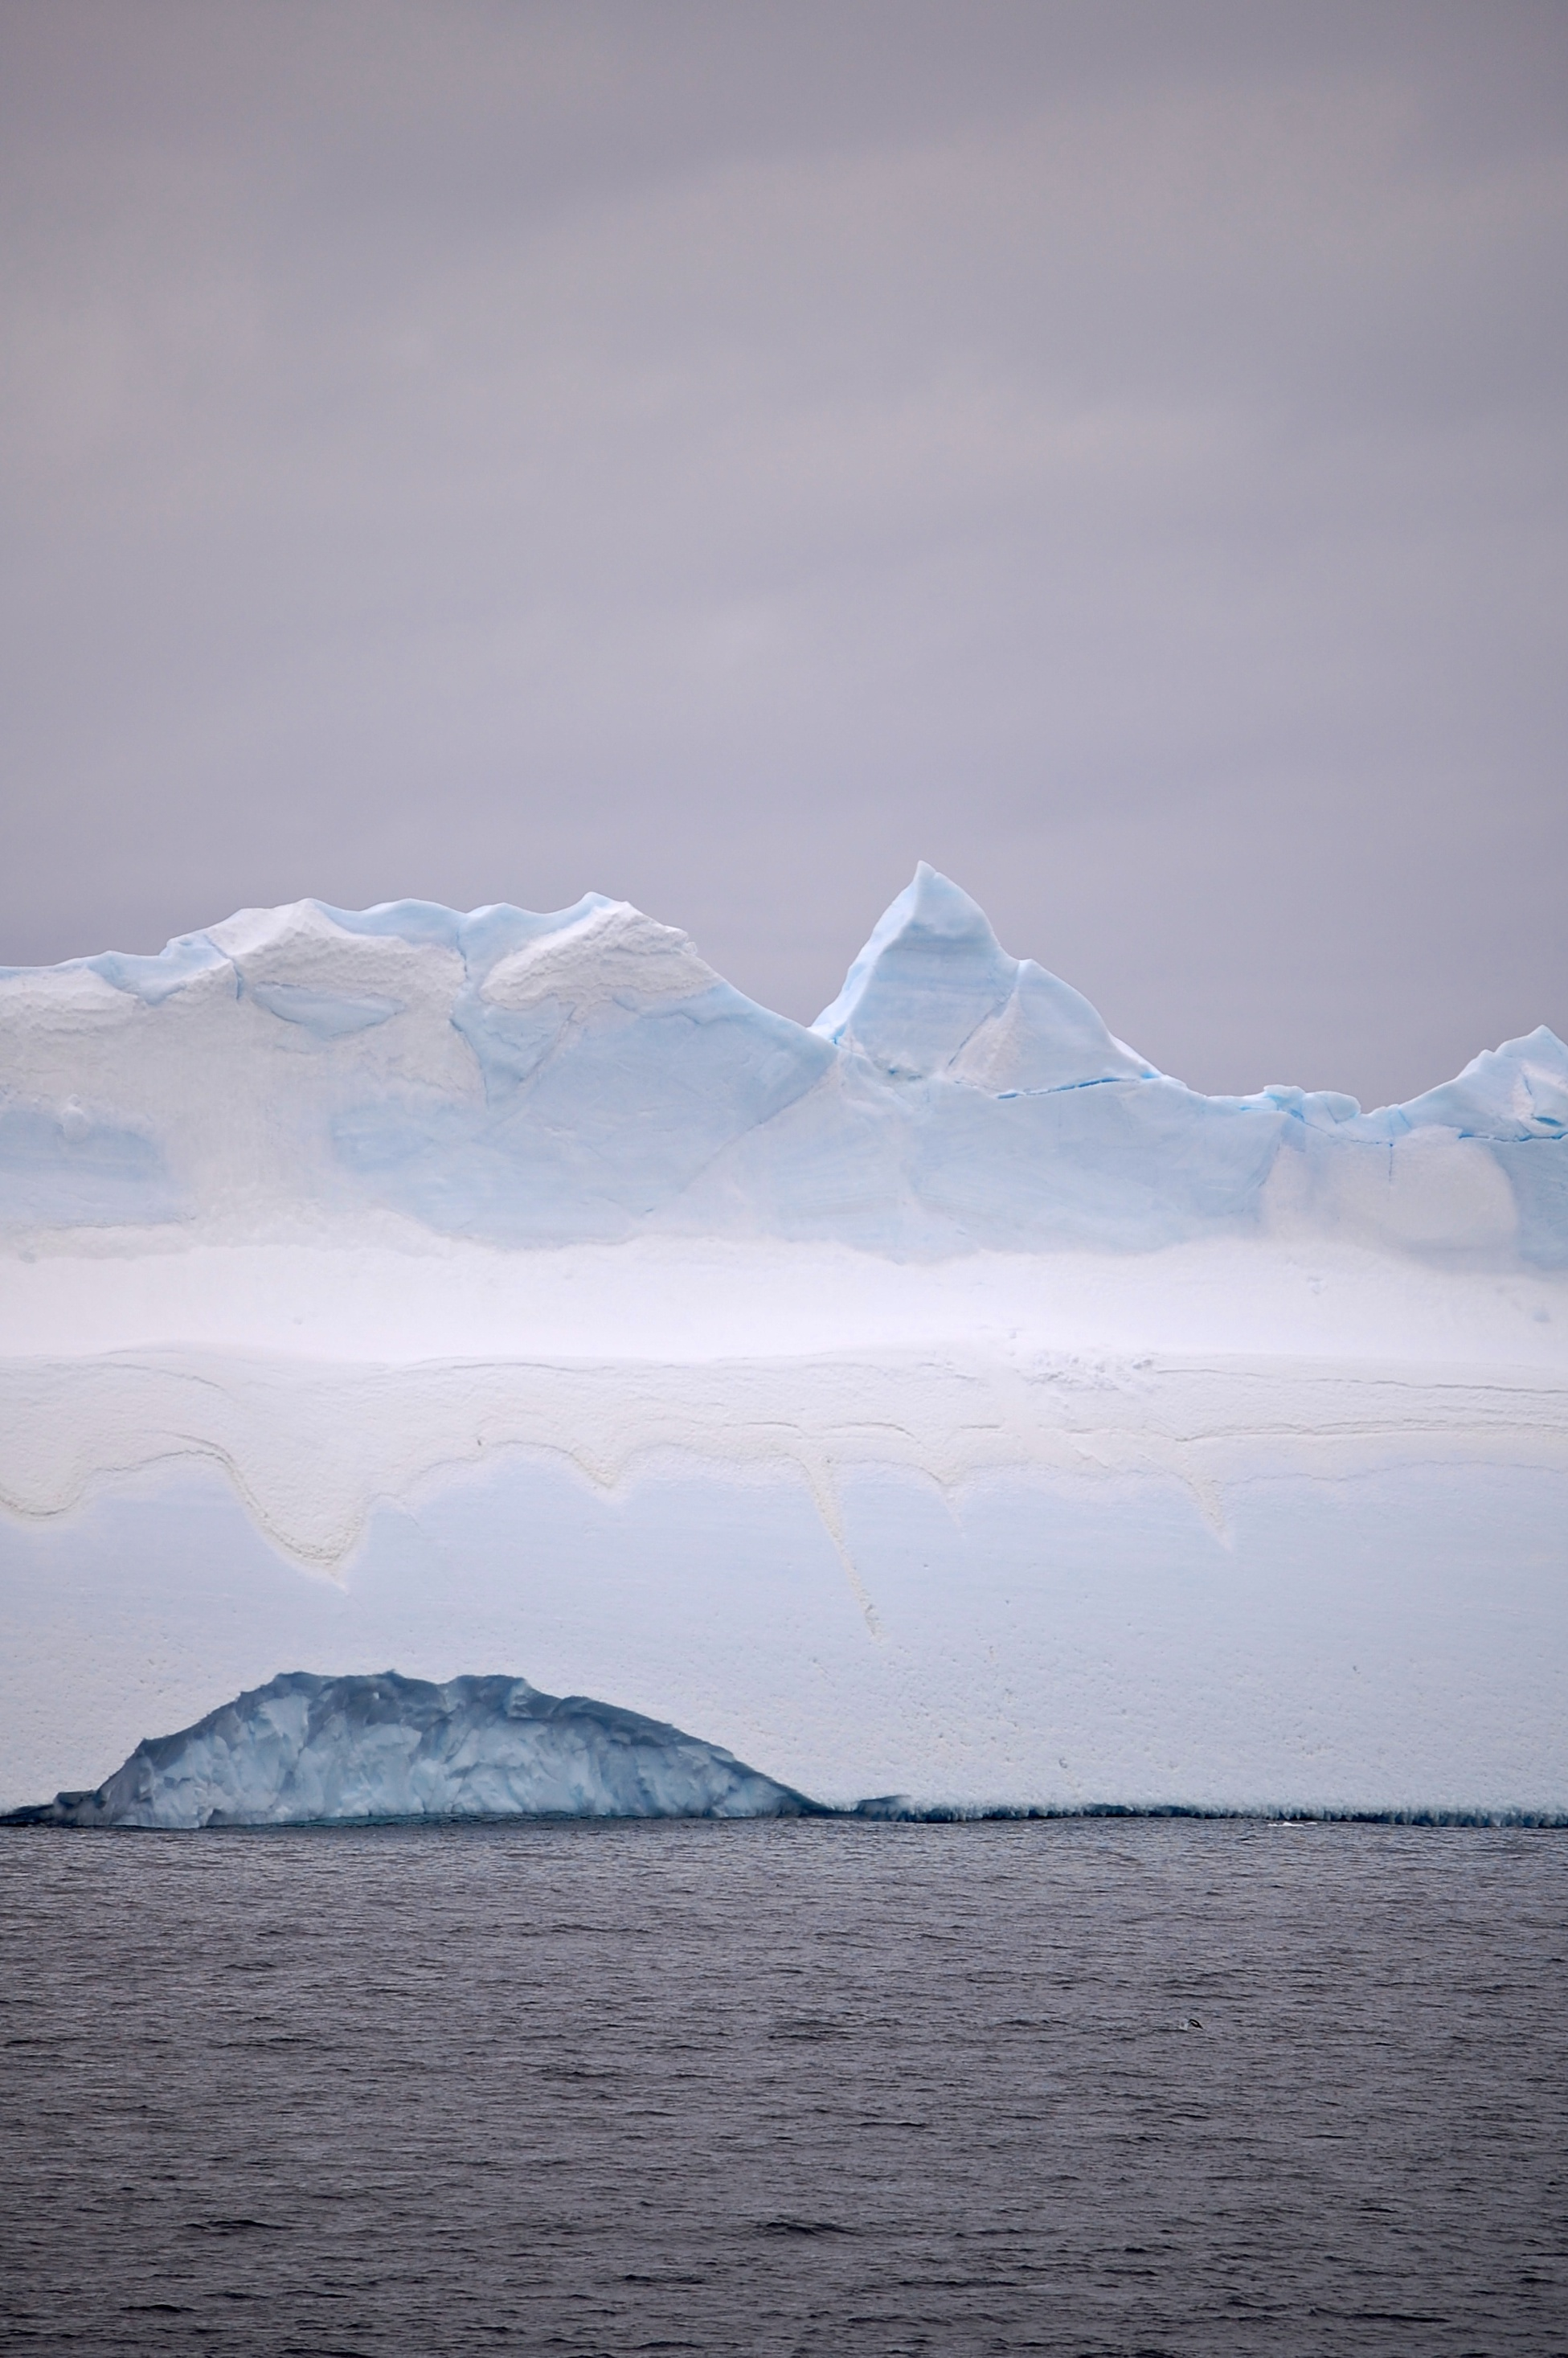 mile wide iceberg